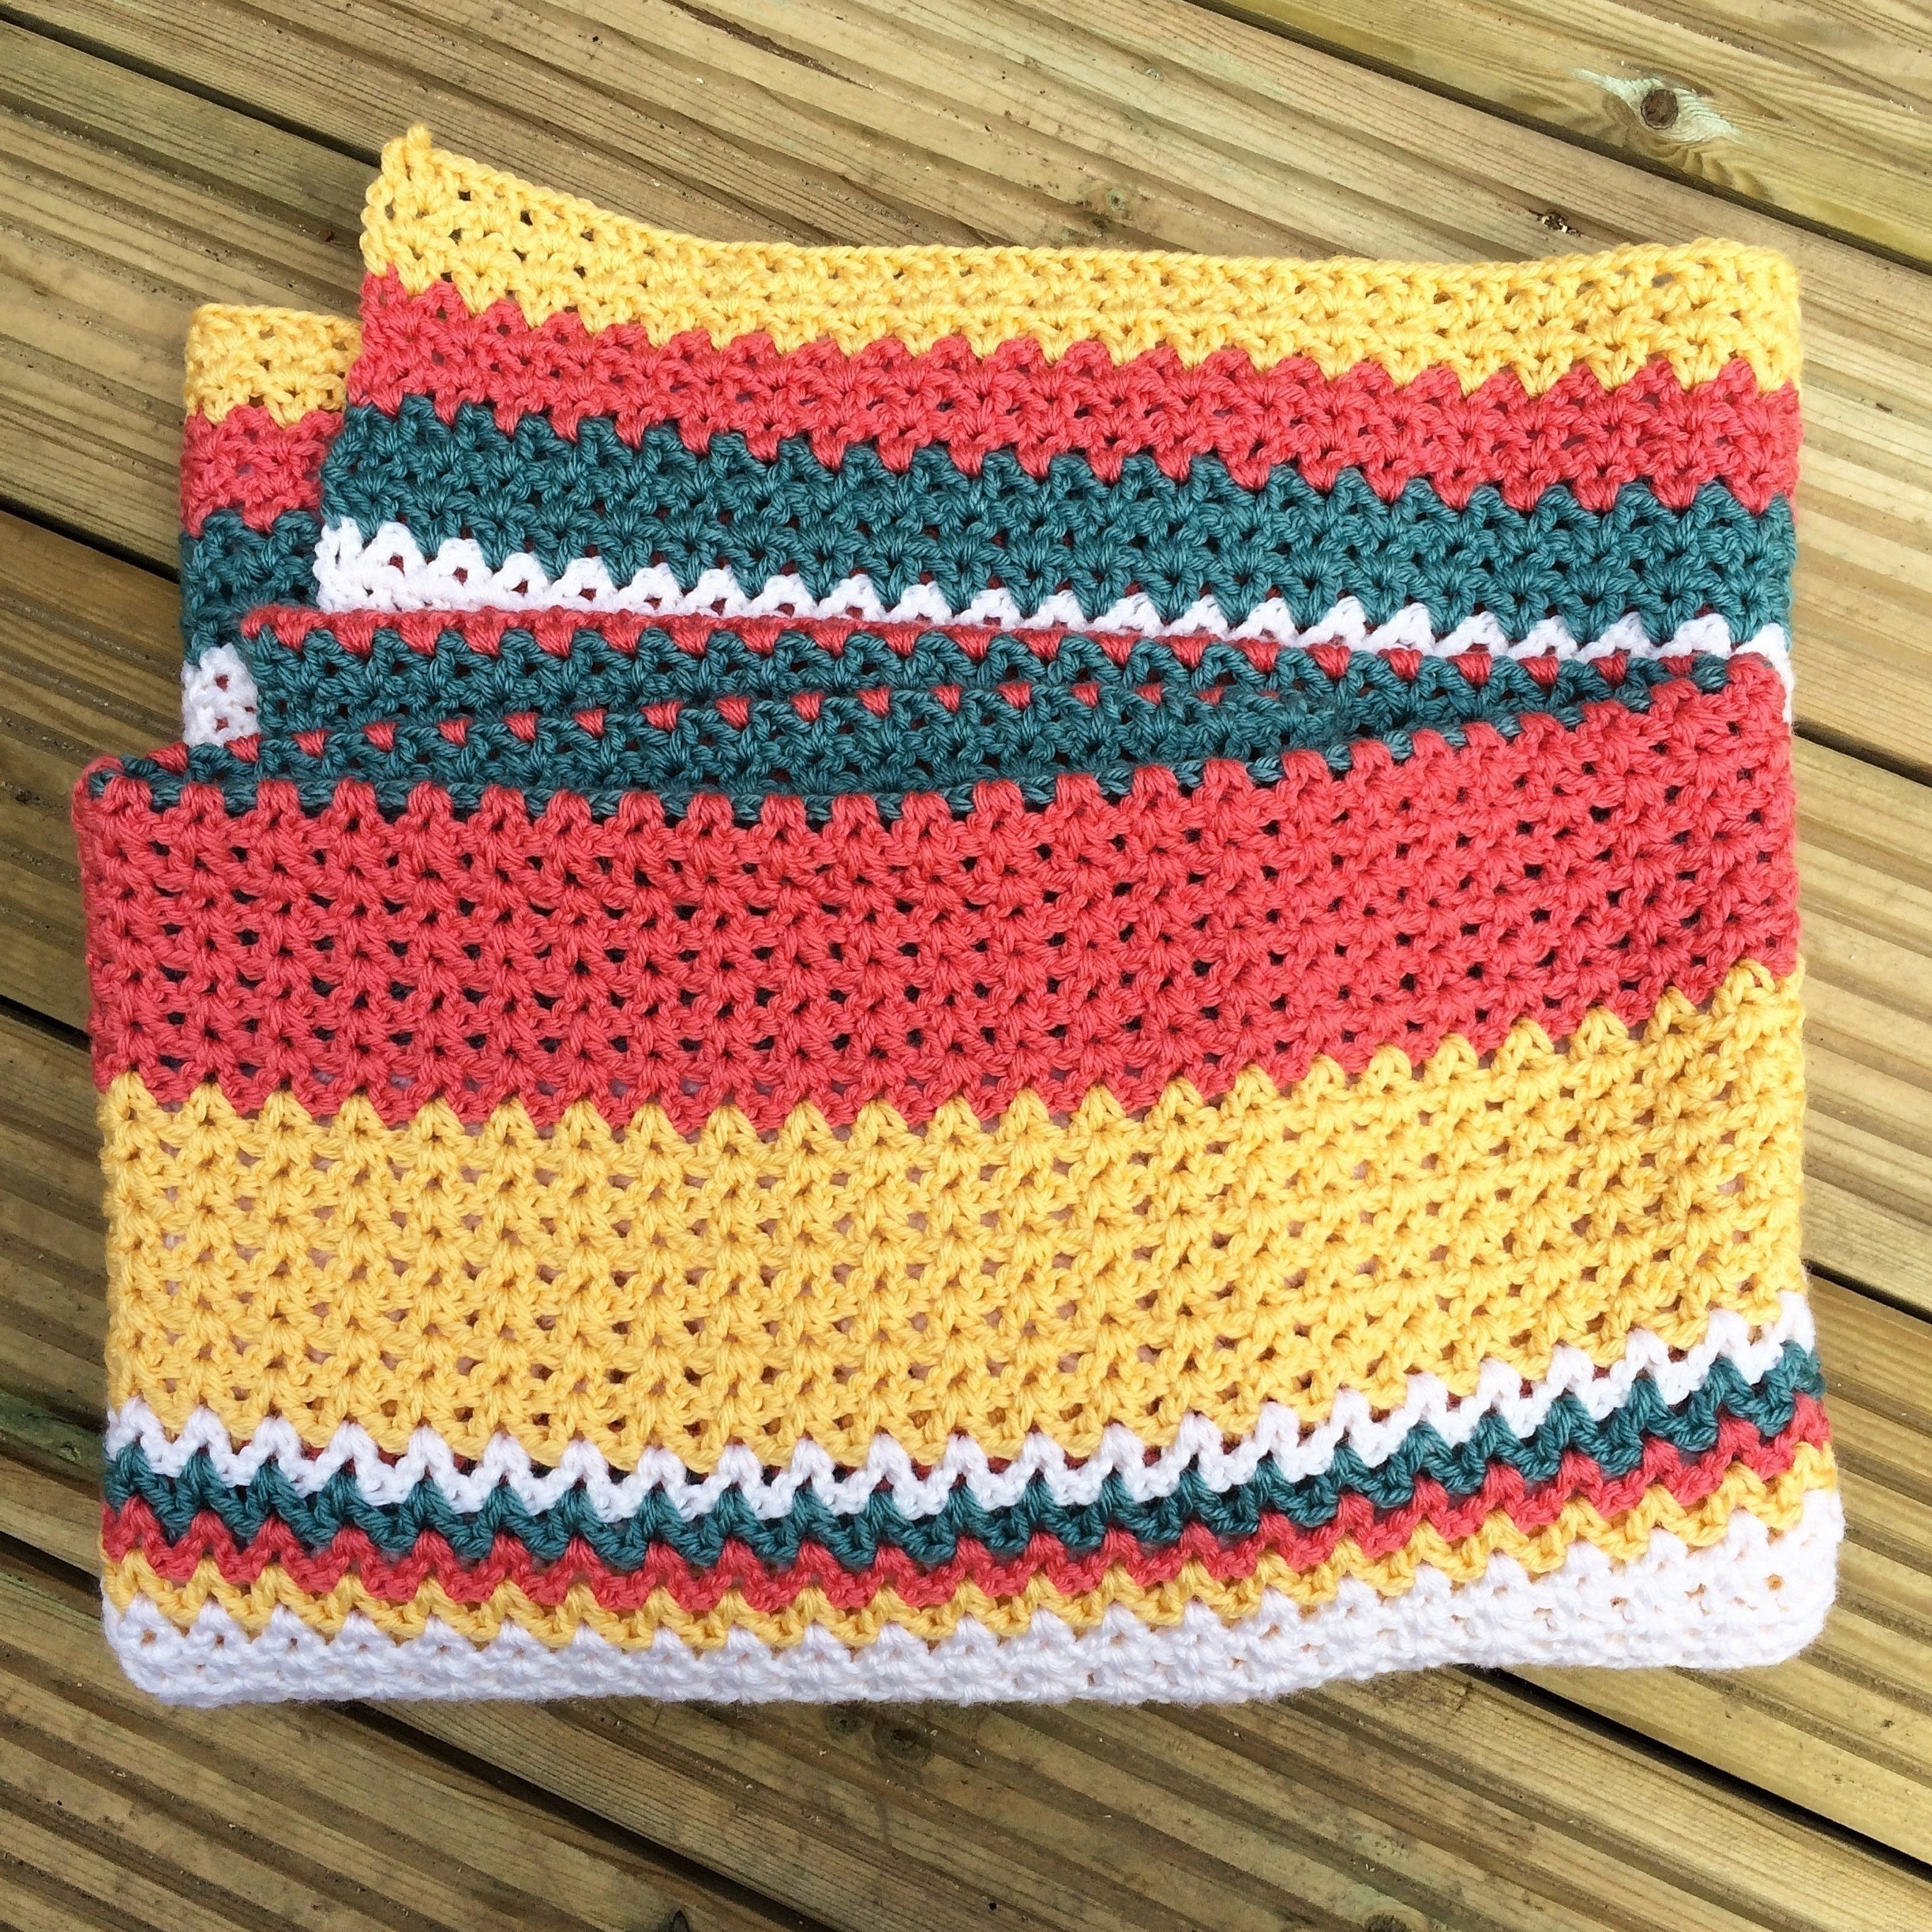 Sunset Crush Blanket 183 How To Stitch A Knit Or Crochet